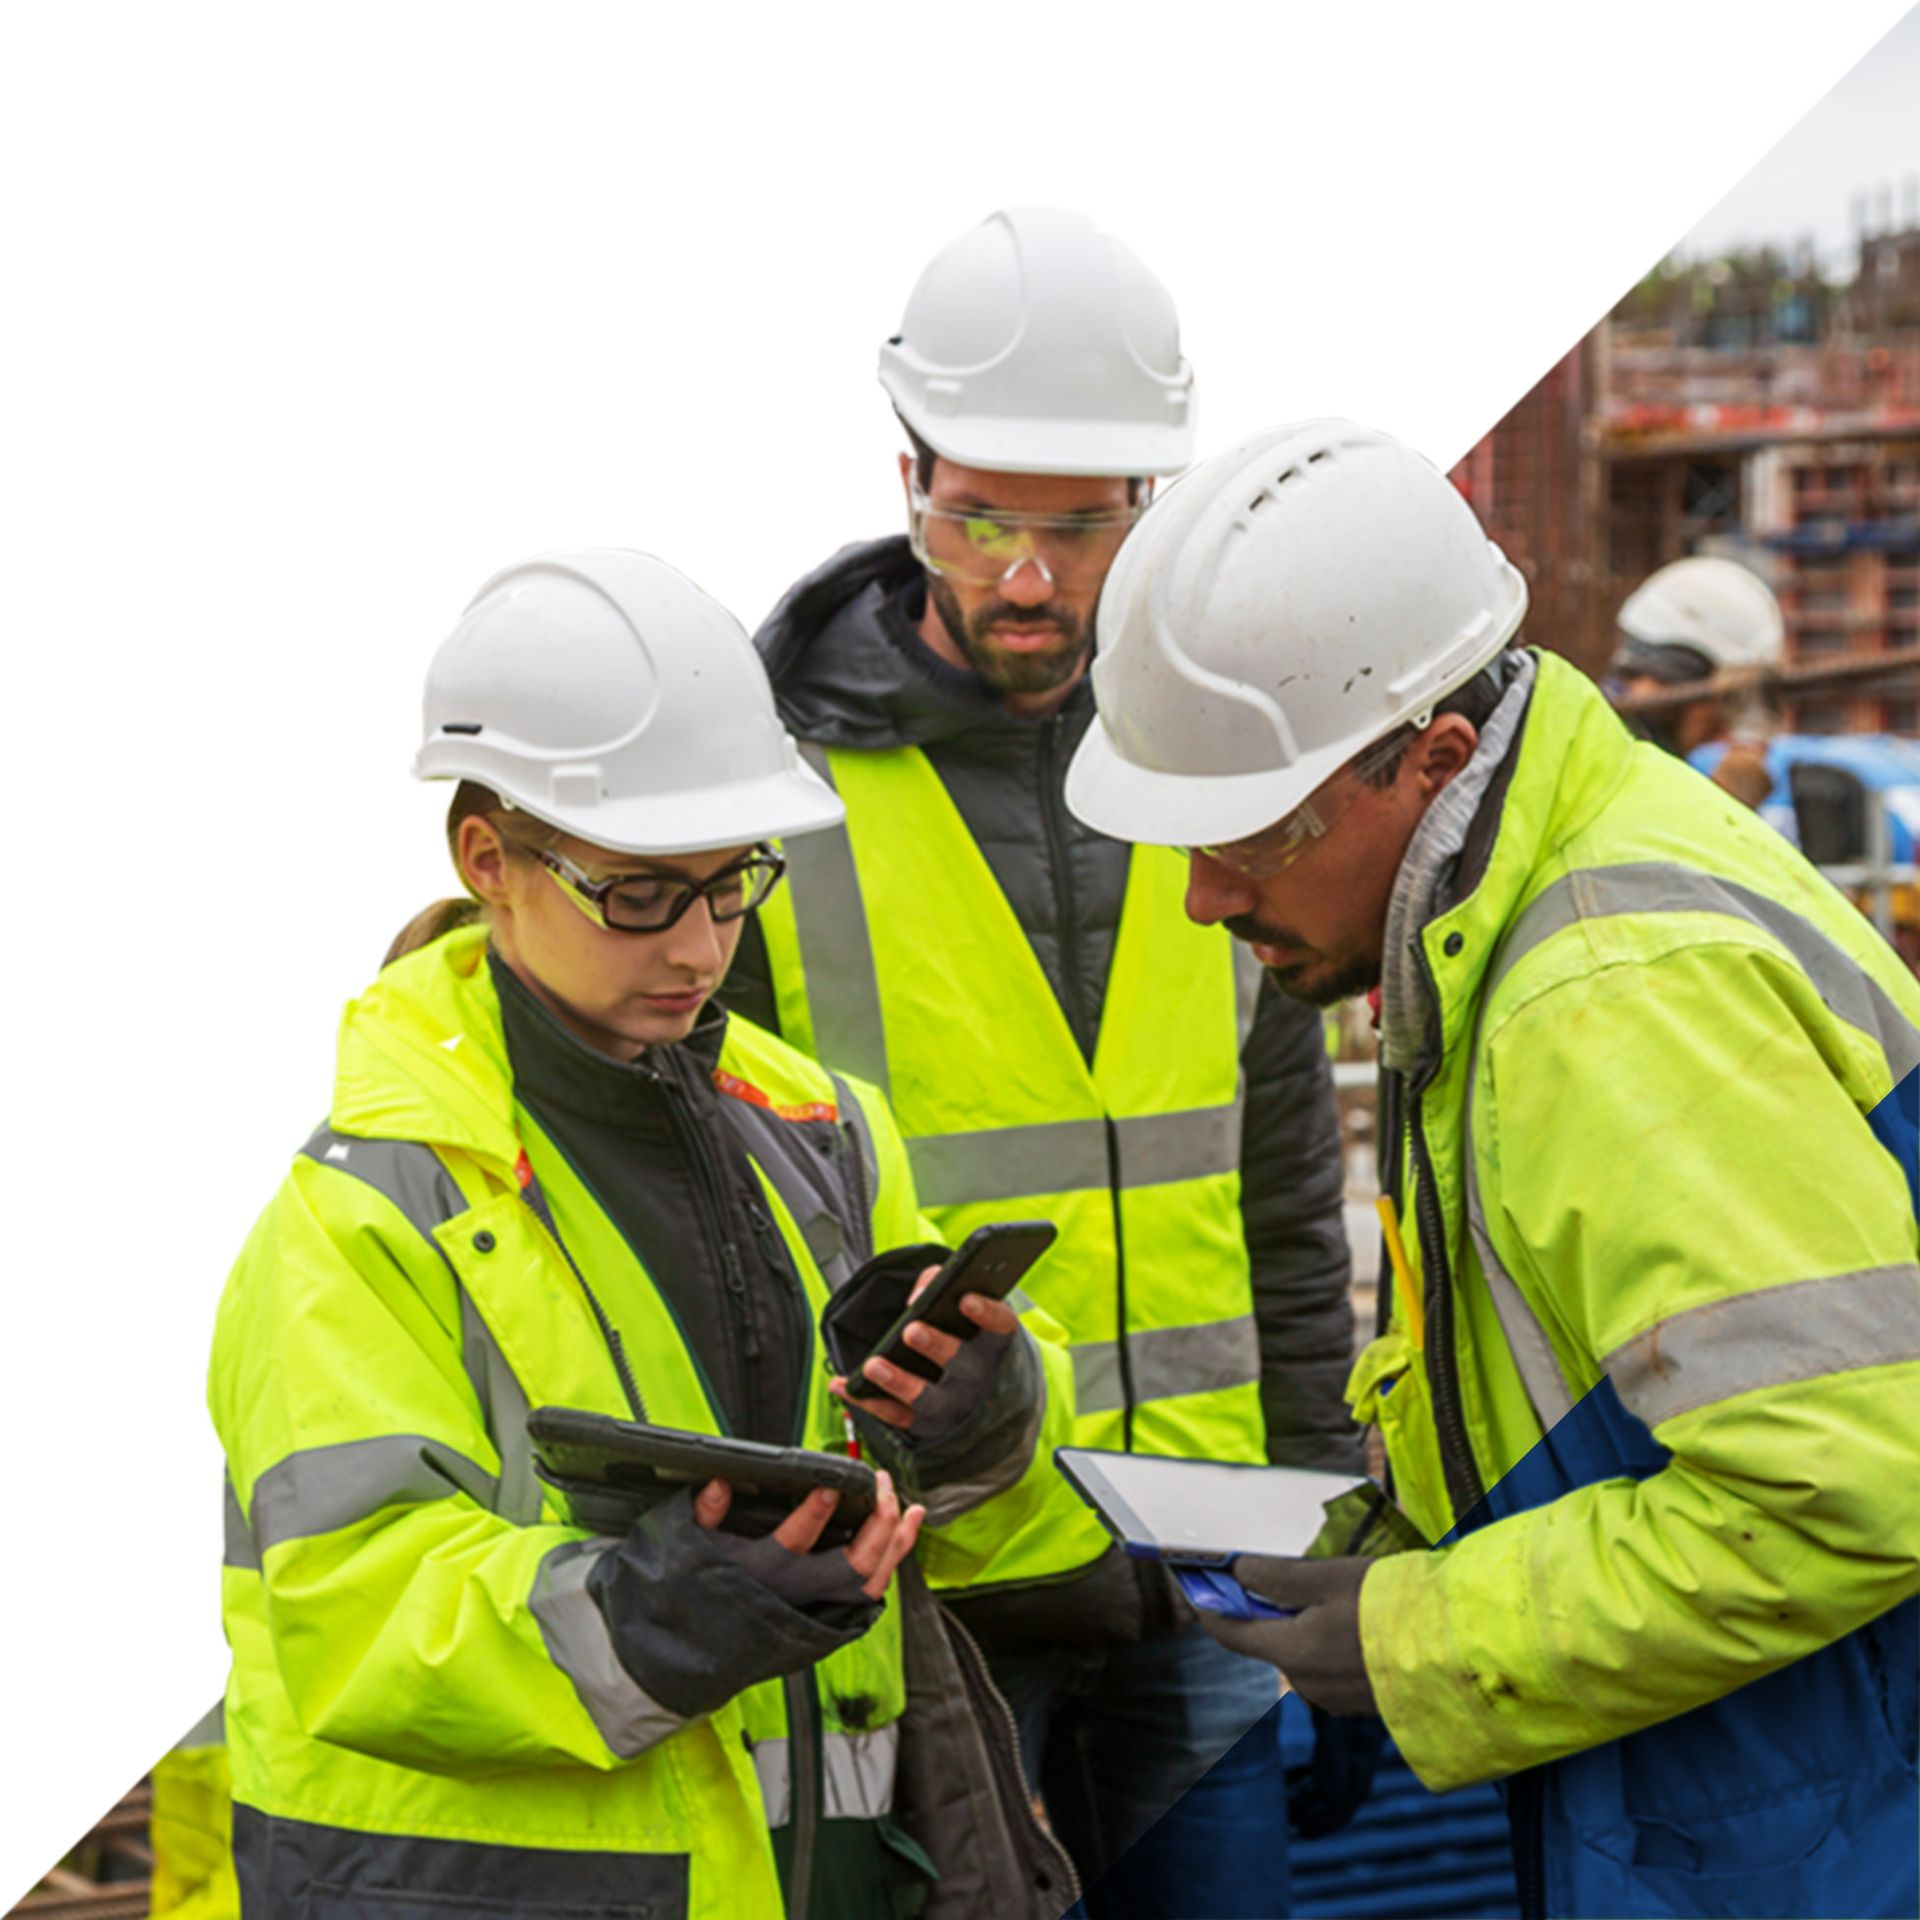 Three site construction workers looking at data on mobile devices and tablets.